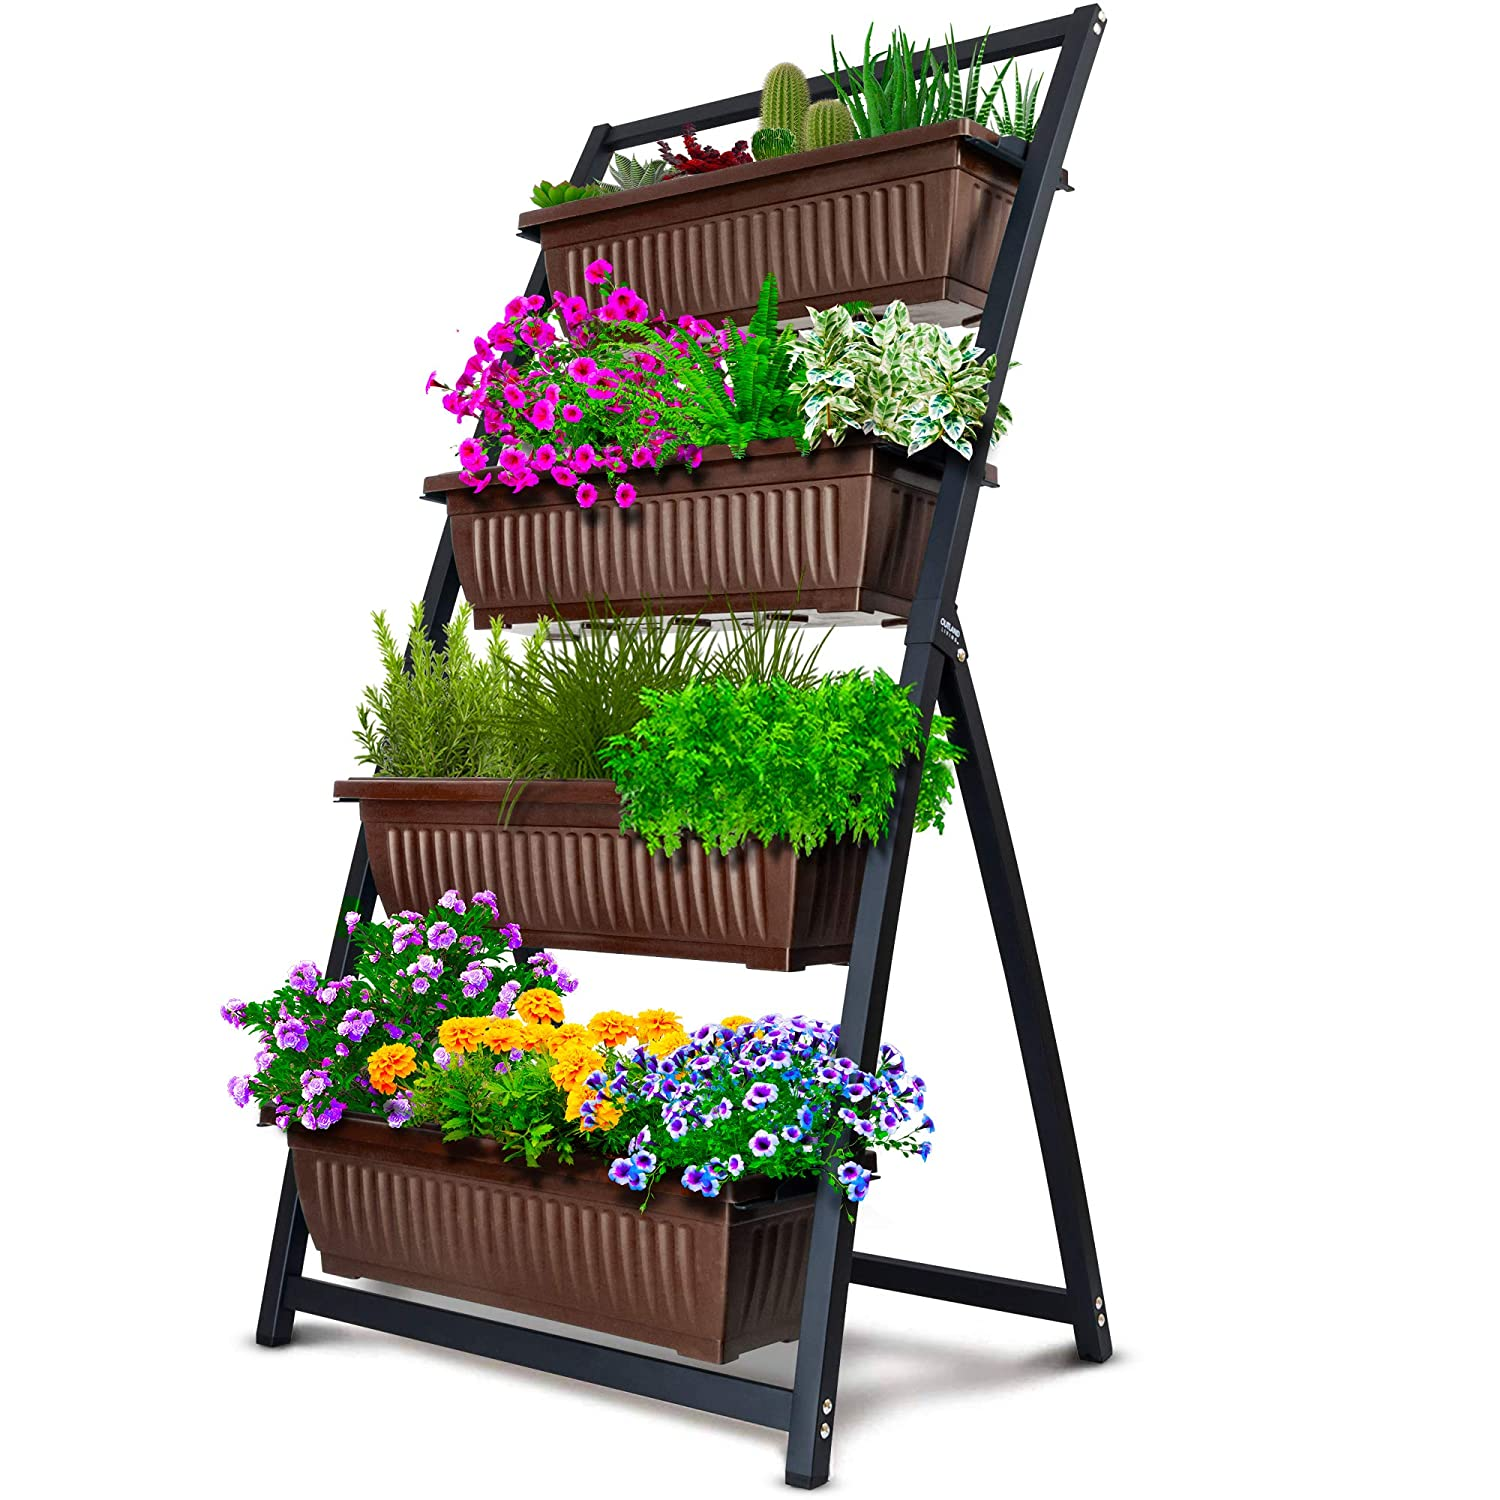 4-Ft Raised Garden Bed – Vertical Garden Freestanding Elevated Planters 4 Container Boxes – Good for Patio Balcony Indoor Outdoor – Cascading Water Drainage 1-Pack Fernie